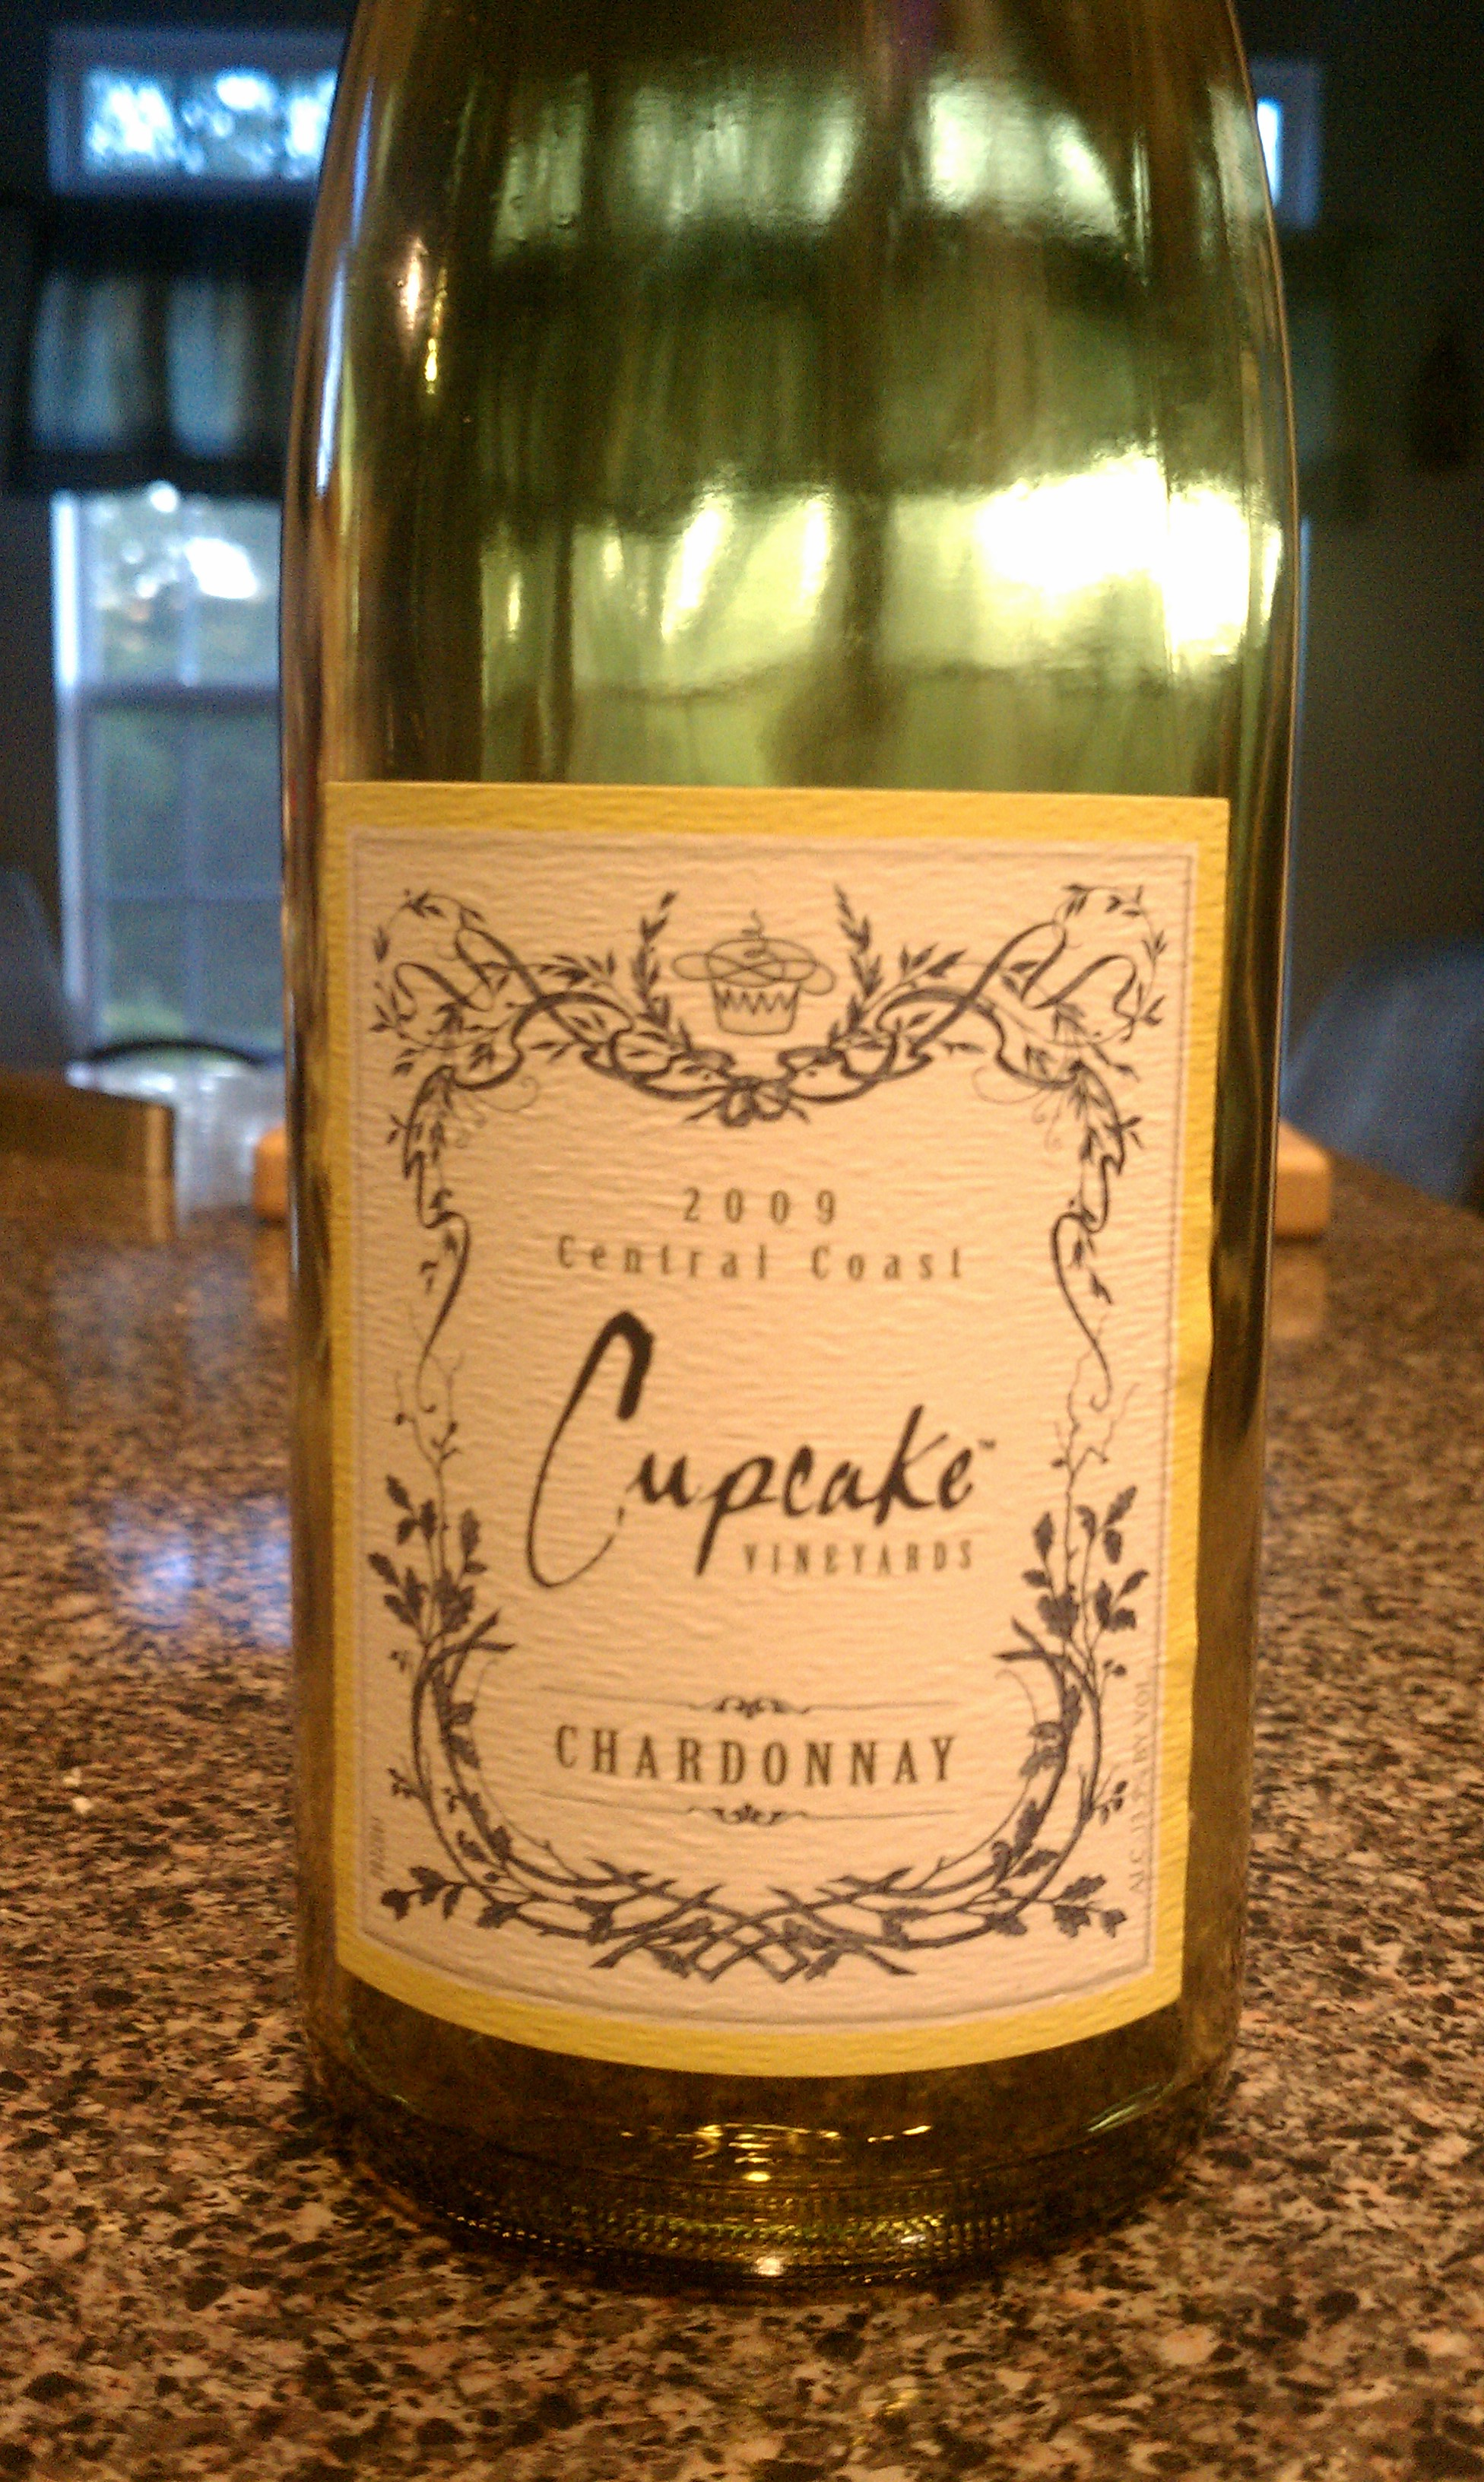 2009 Cupcake Vineyards Chardonnay